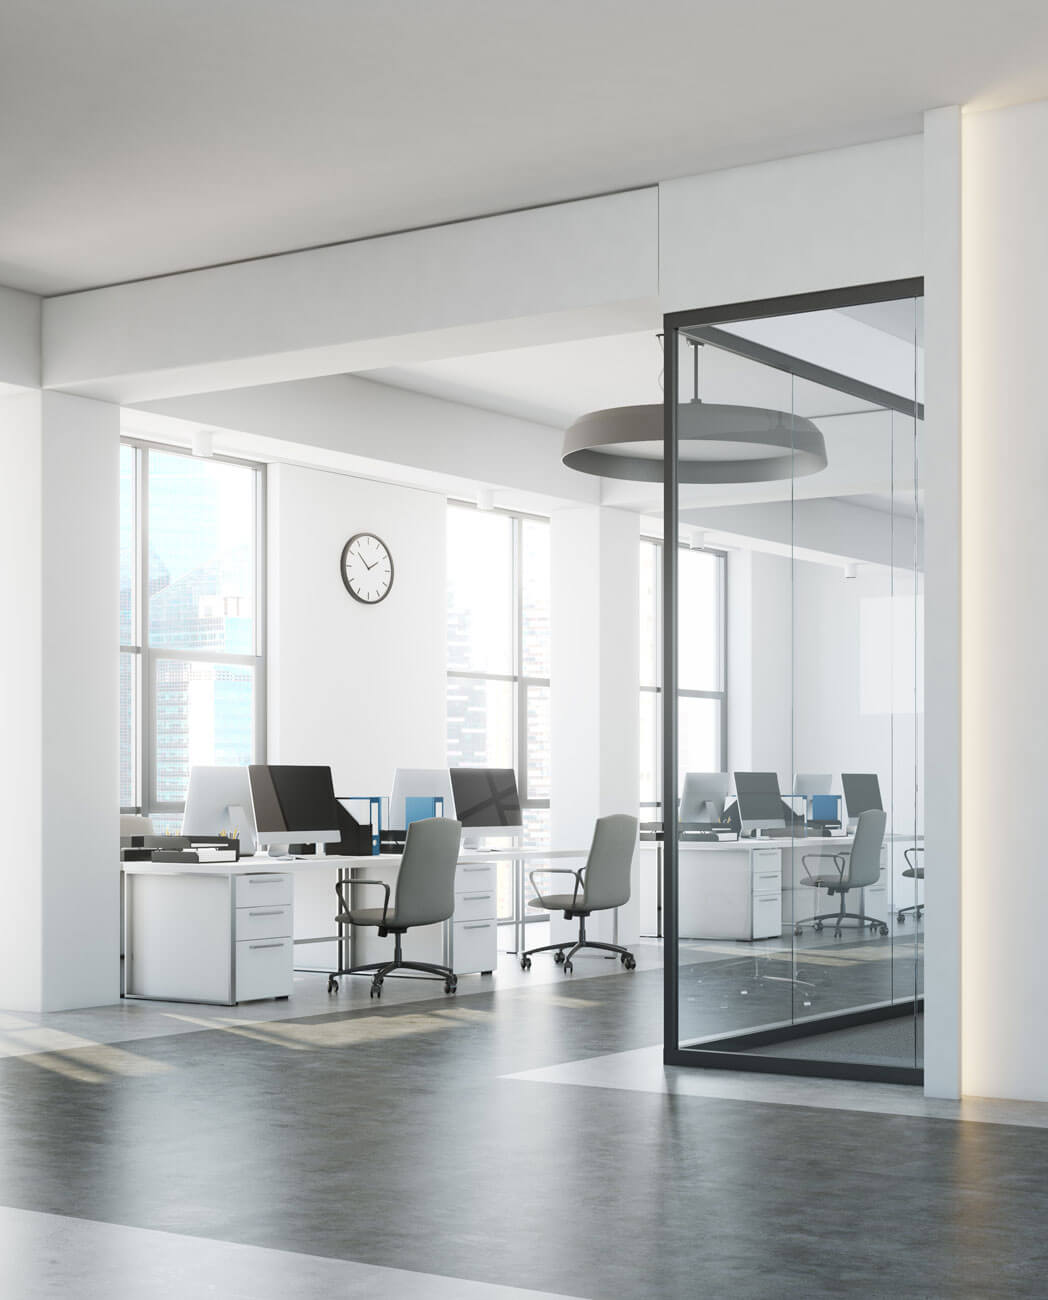 Workplace with four systems